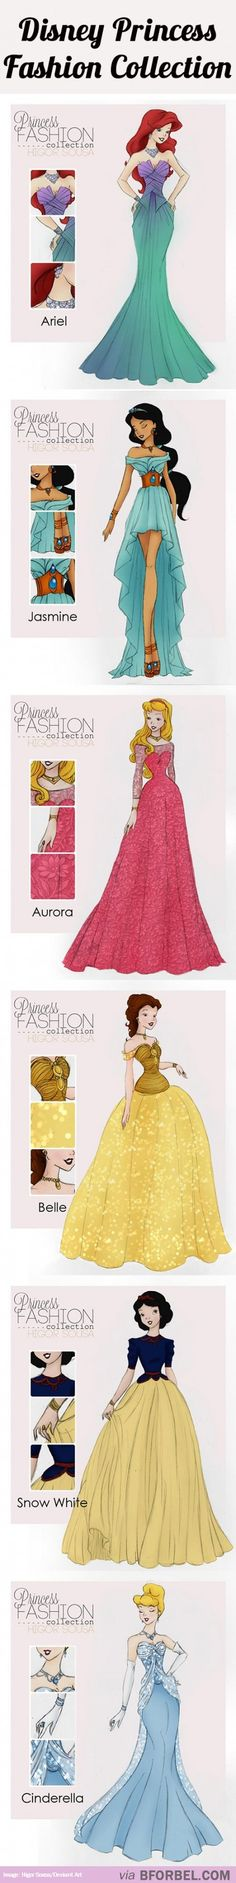 6 Disney Princess Fashion Collections…